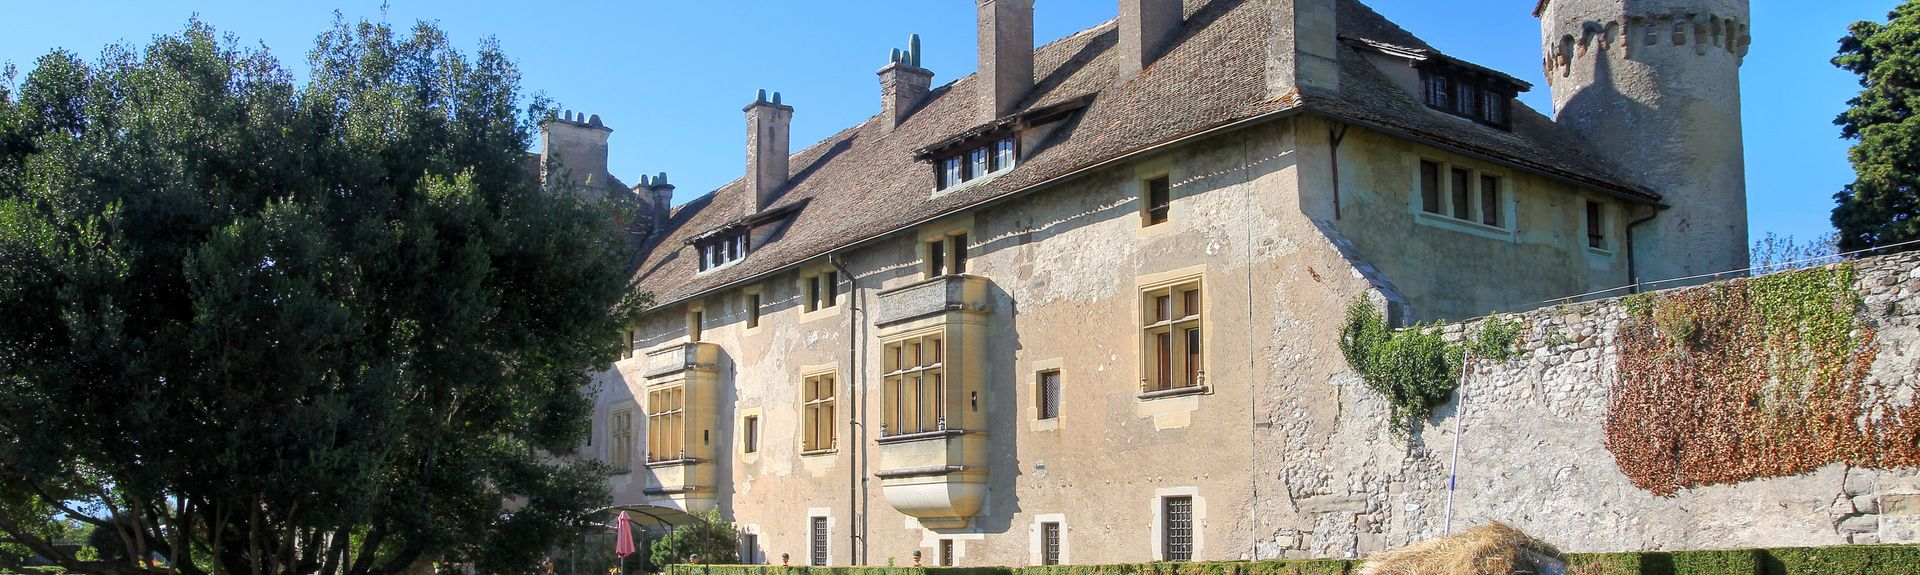 Thonon-les-Bains, FR holiday lettings: Houses & more | HomeAway